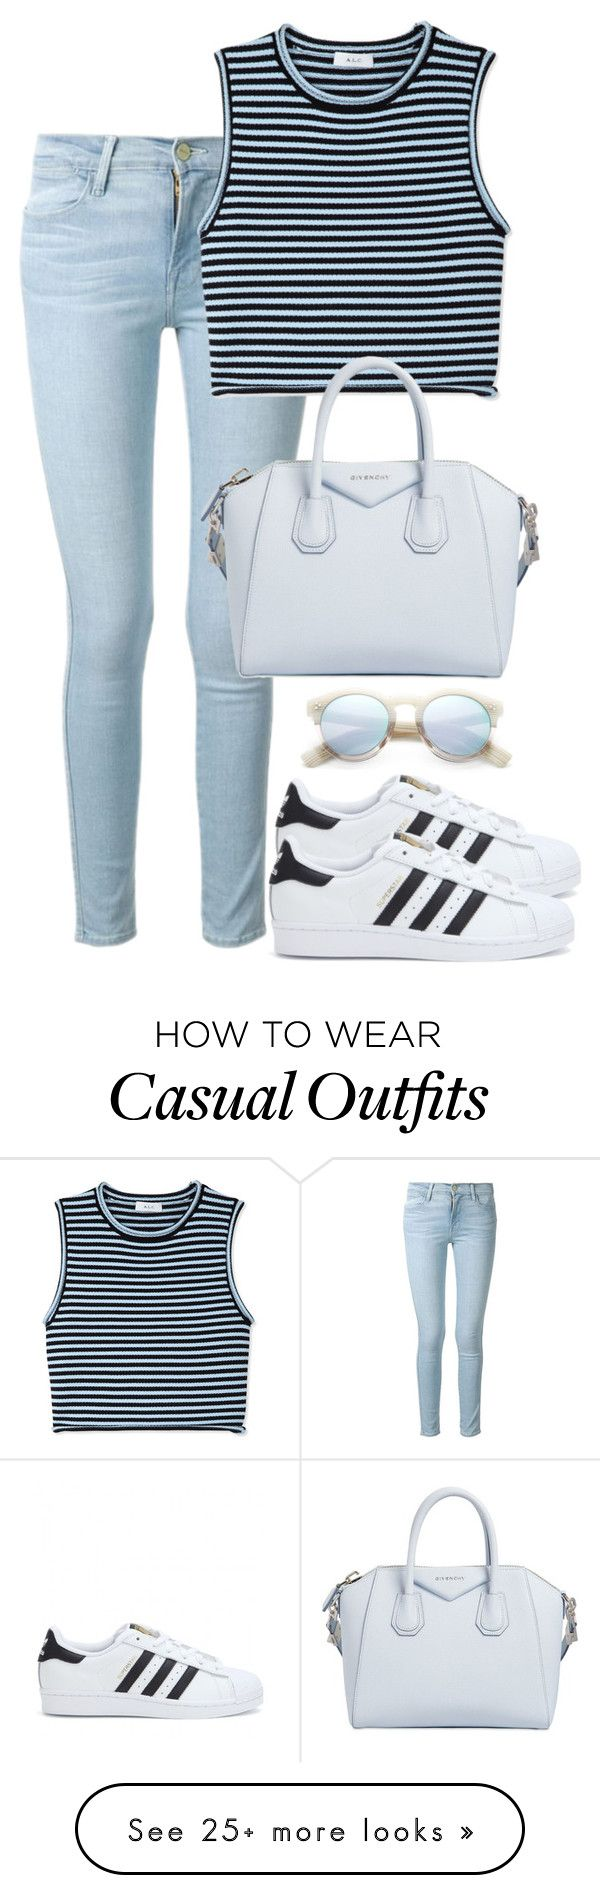 """L.A casual."" by gisille on Polyvore featuring moda, Frame Denim, A.L.C., adidas, Givenchy i Illesteva"